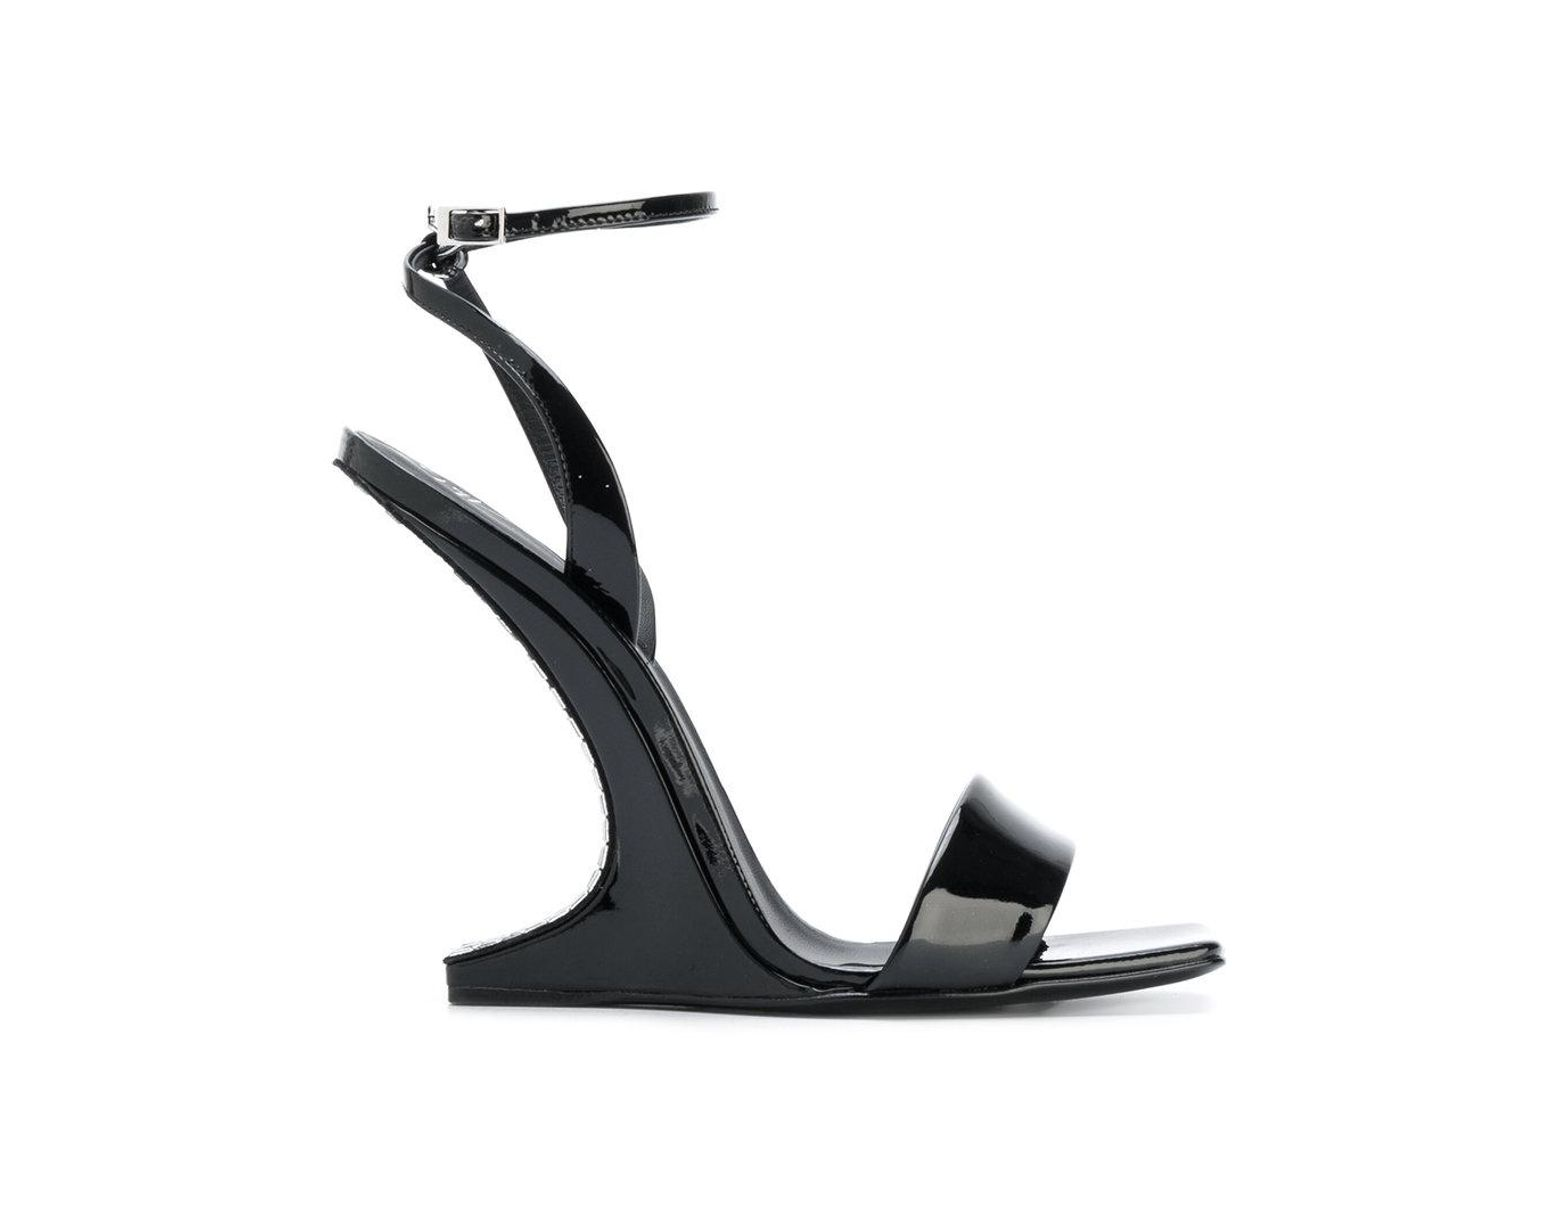 6d0163524c74d Giuseppe Zanotti Picard Wedge Sandals in Black - Lyst